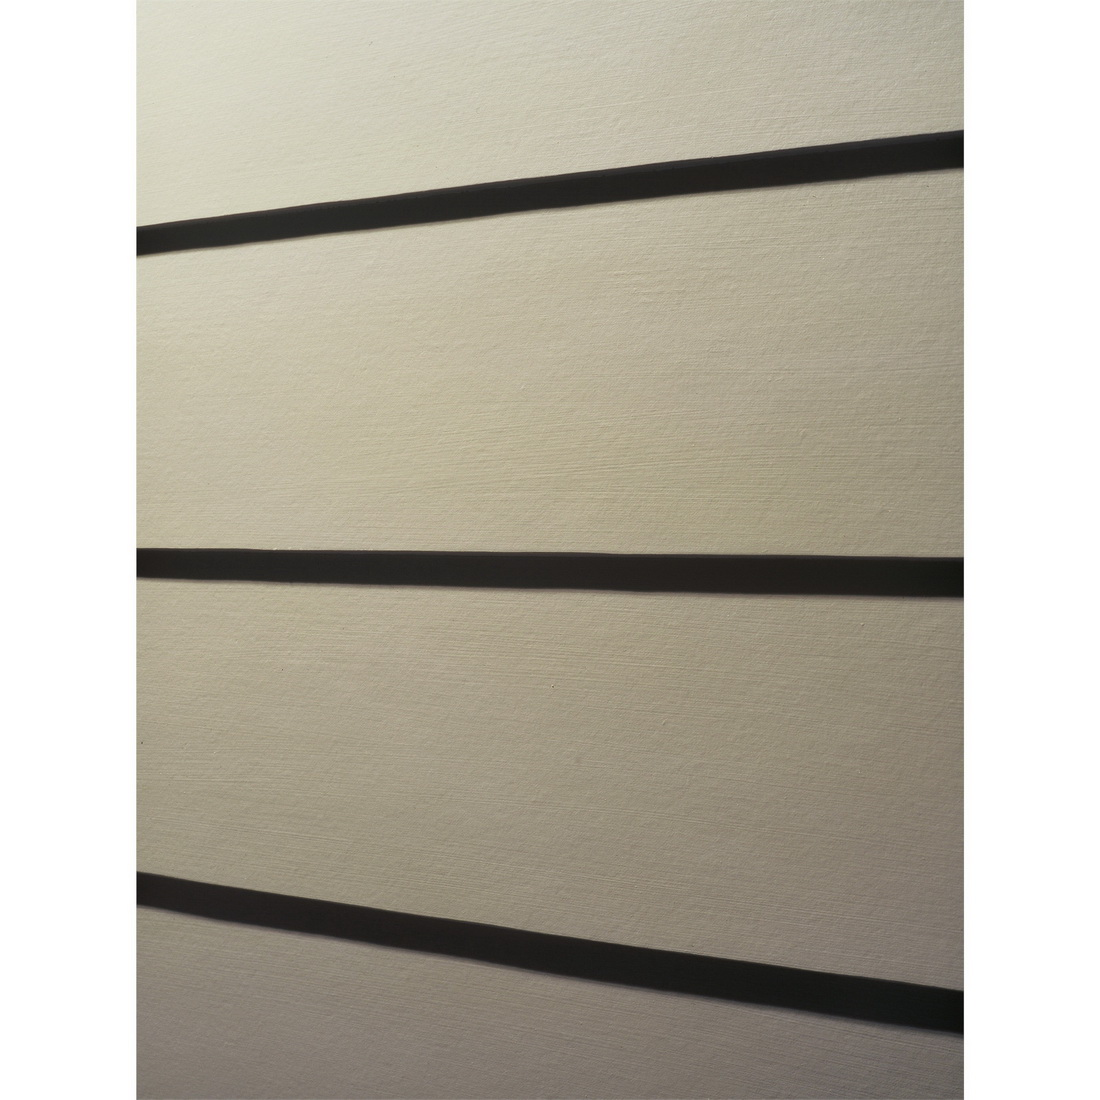 Smooth Weatherboard 4200 x 240 x 7.5mm